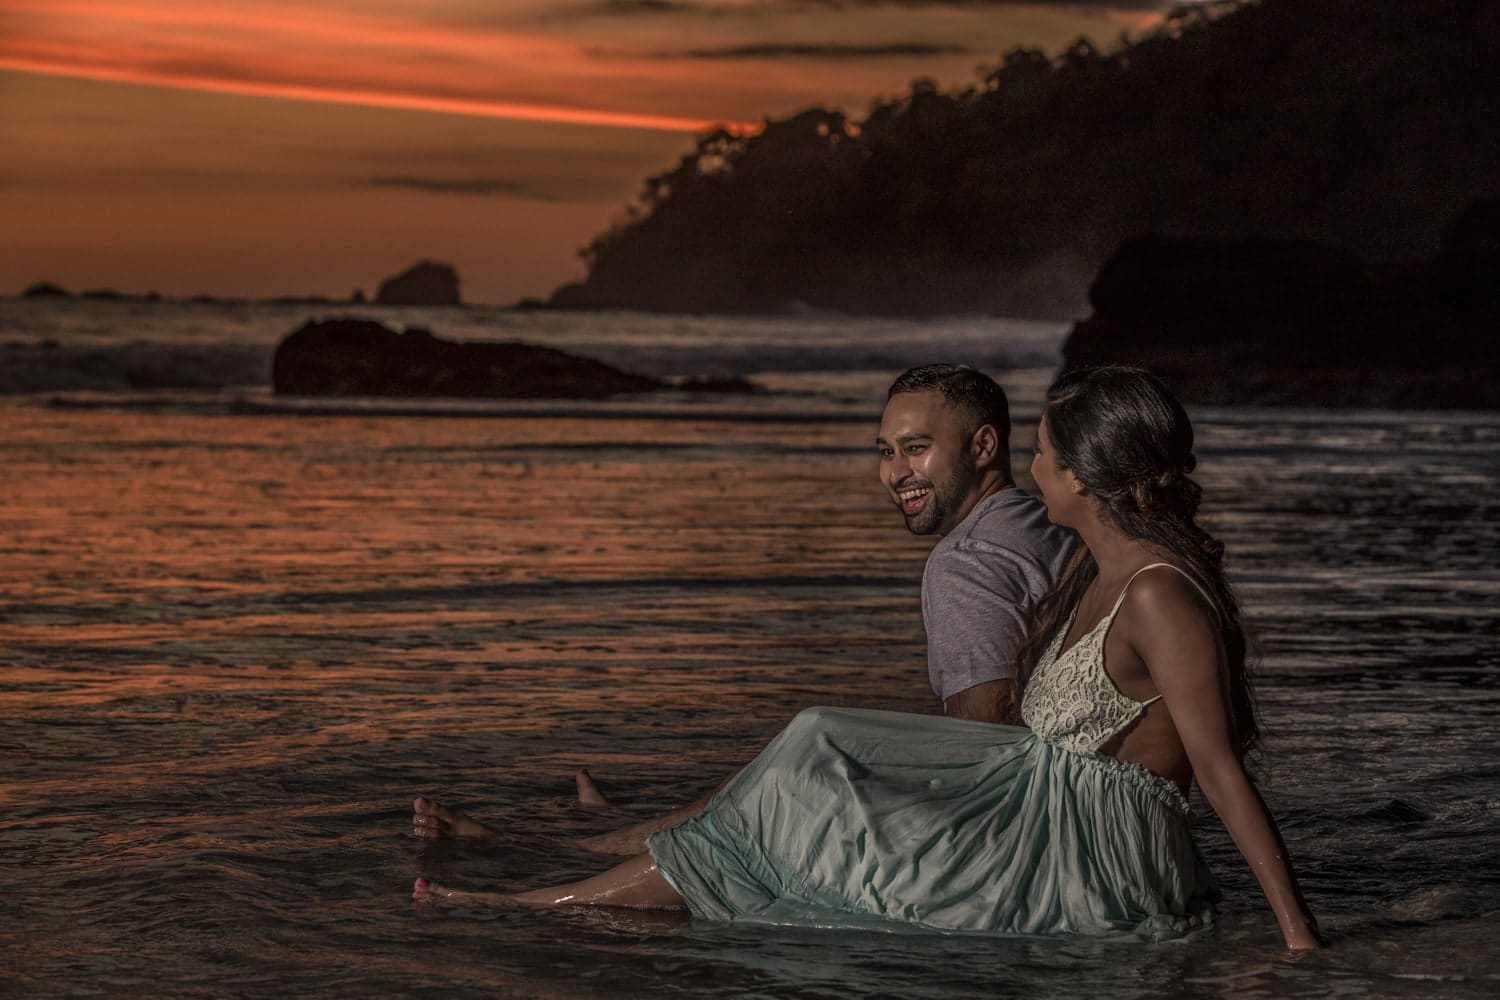 Warm sunlight from setting sun bathes couple in love on beach.